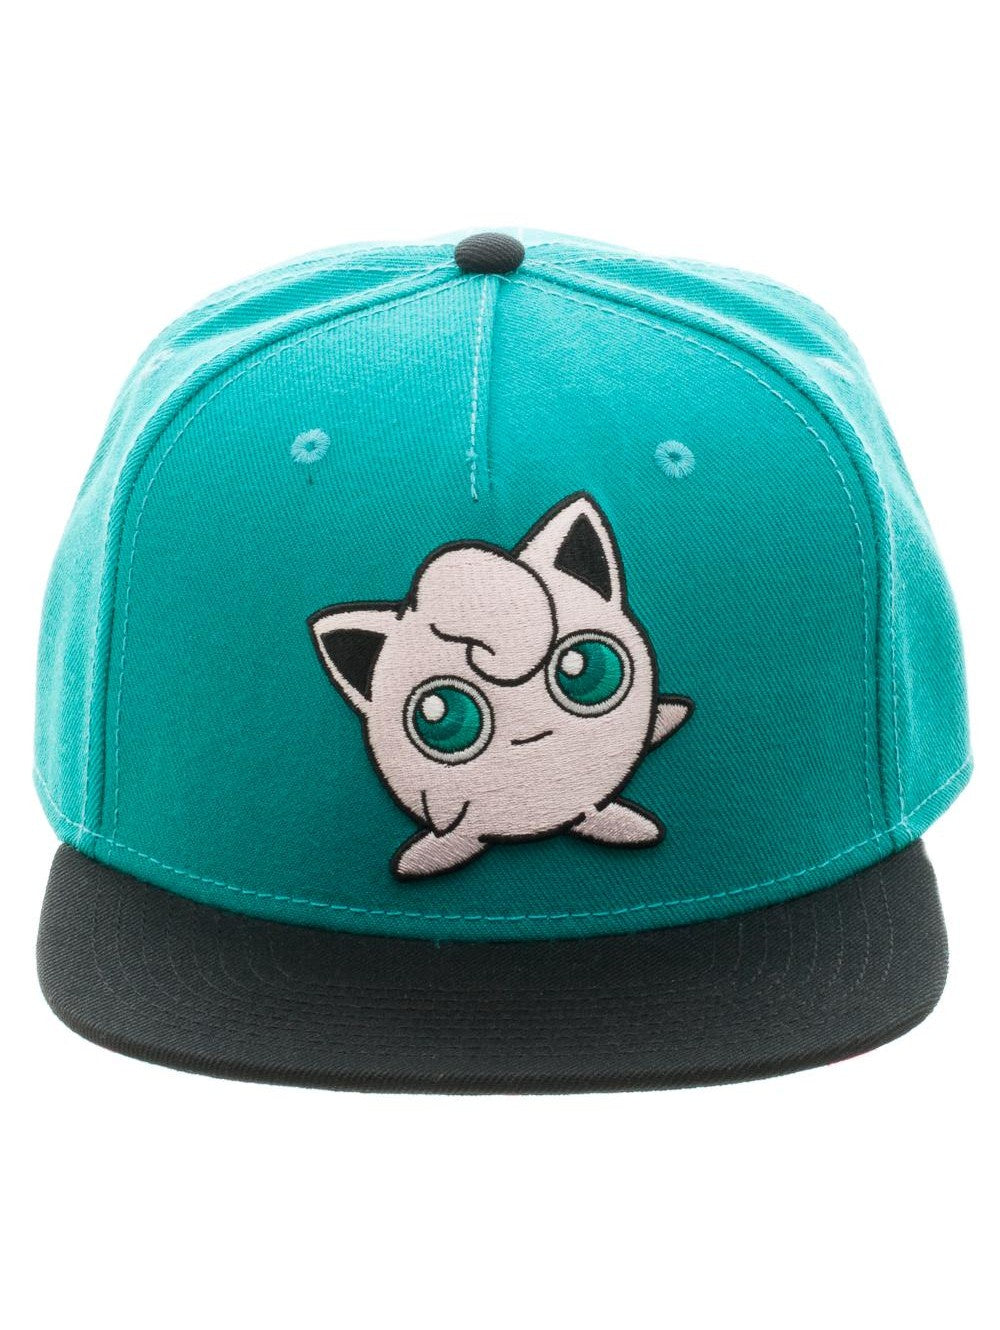 POKÉMON - JIGGLYPUFF - Colour Block Snapback